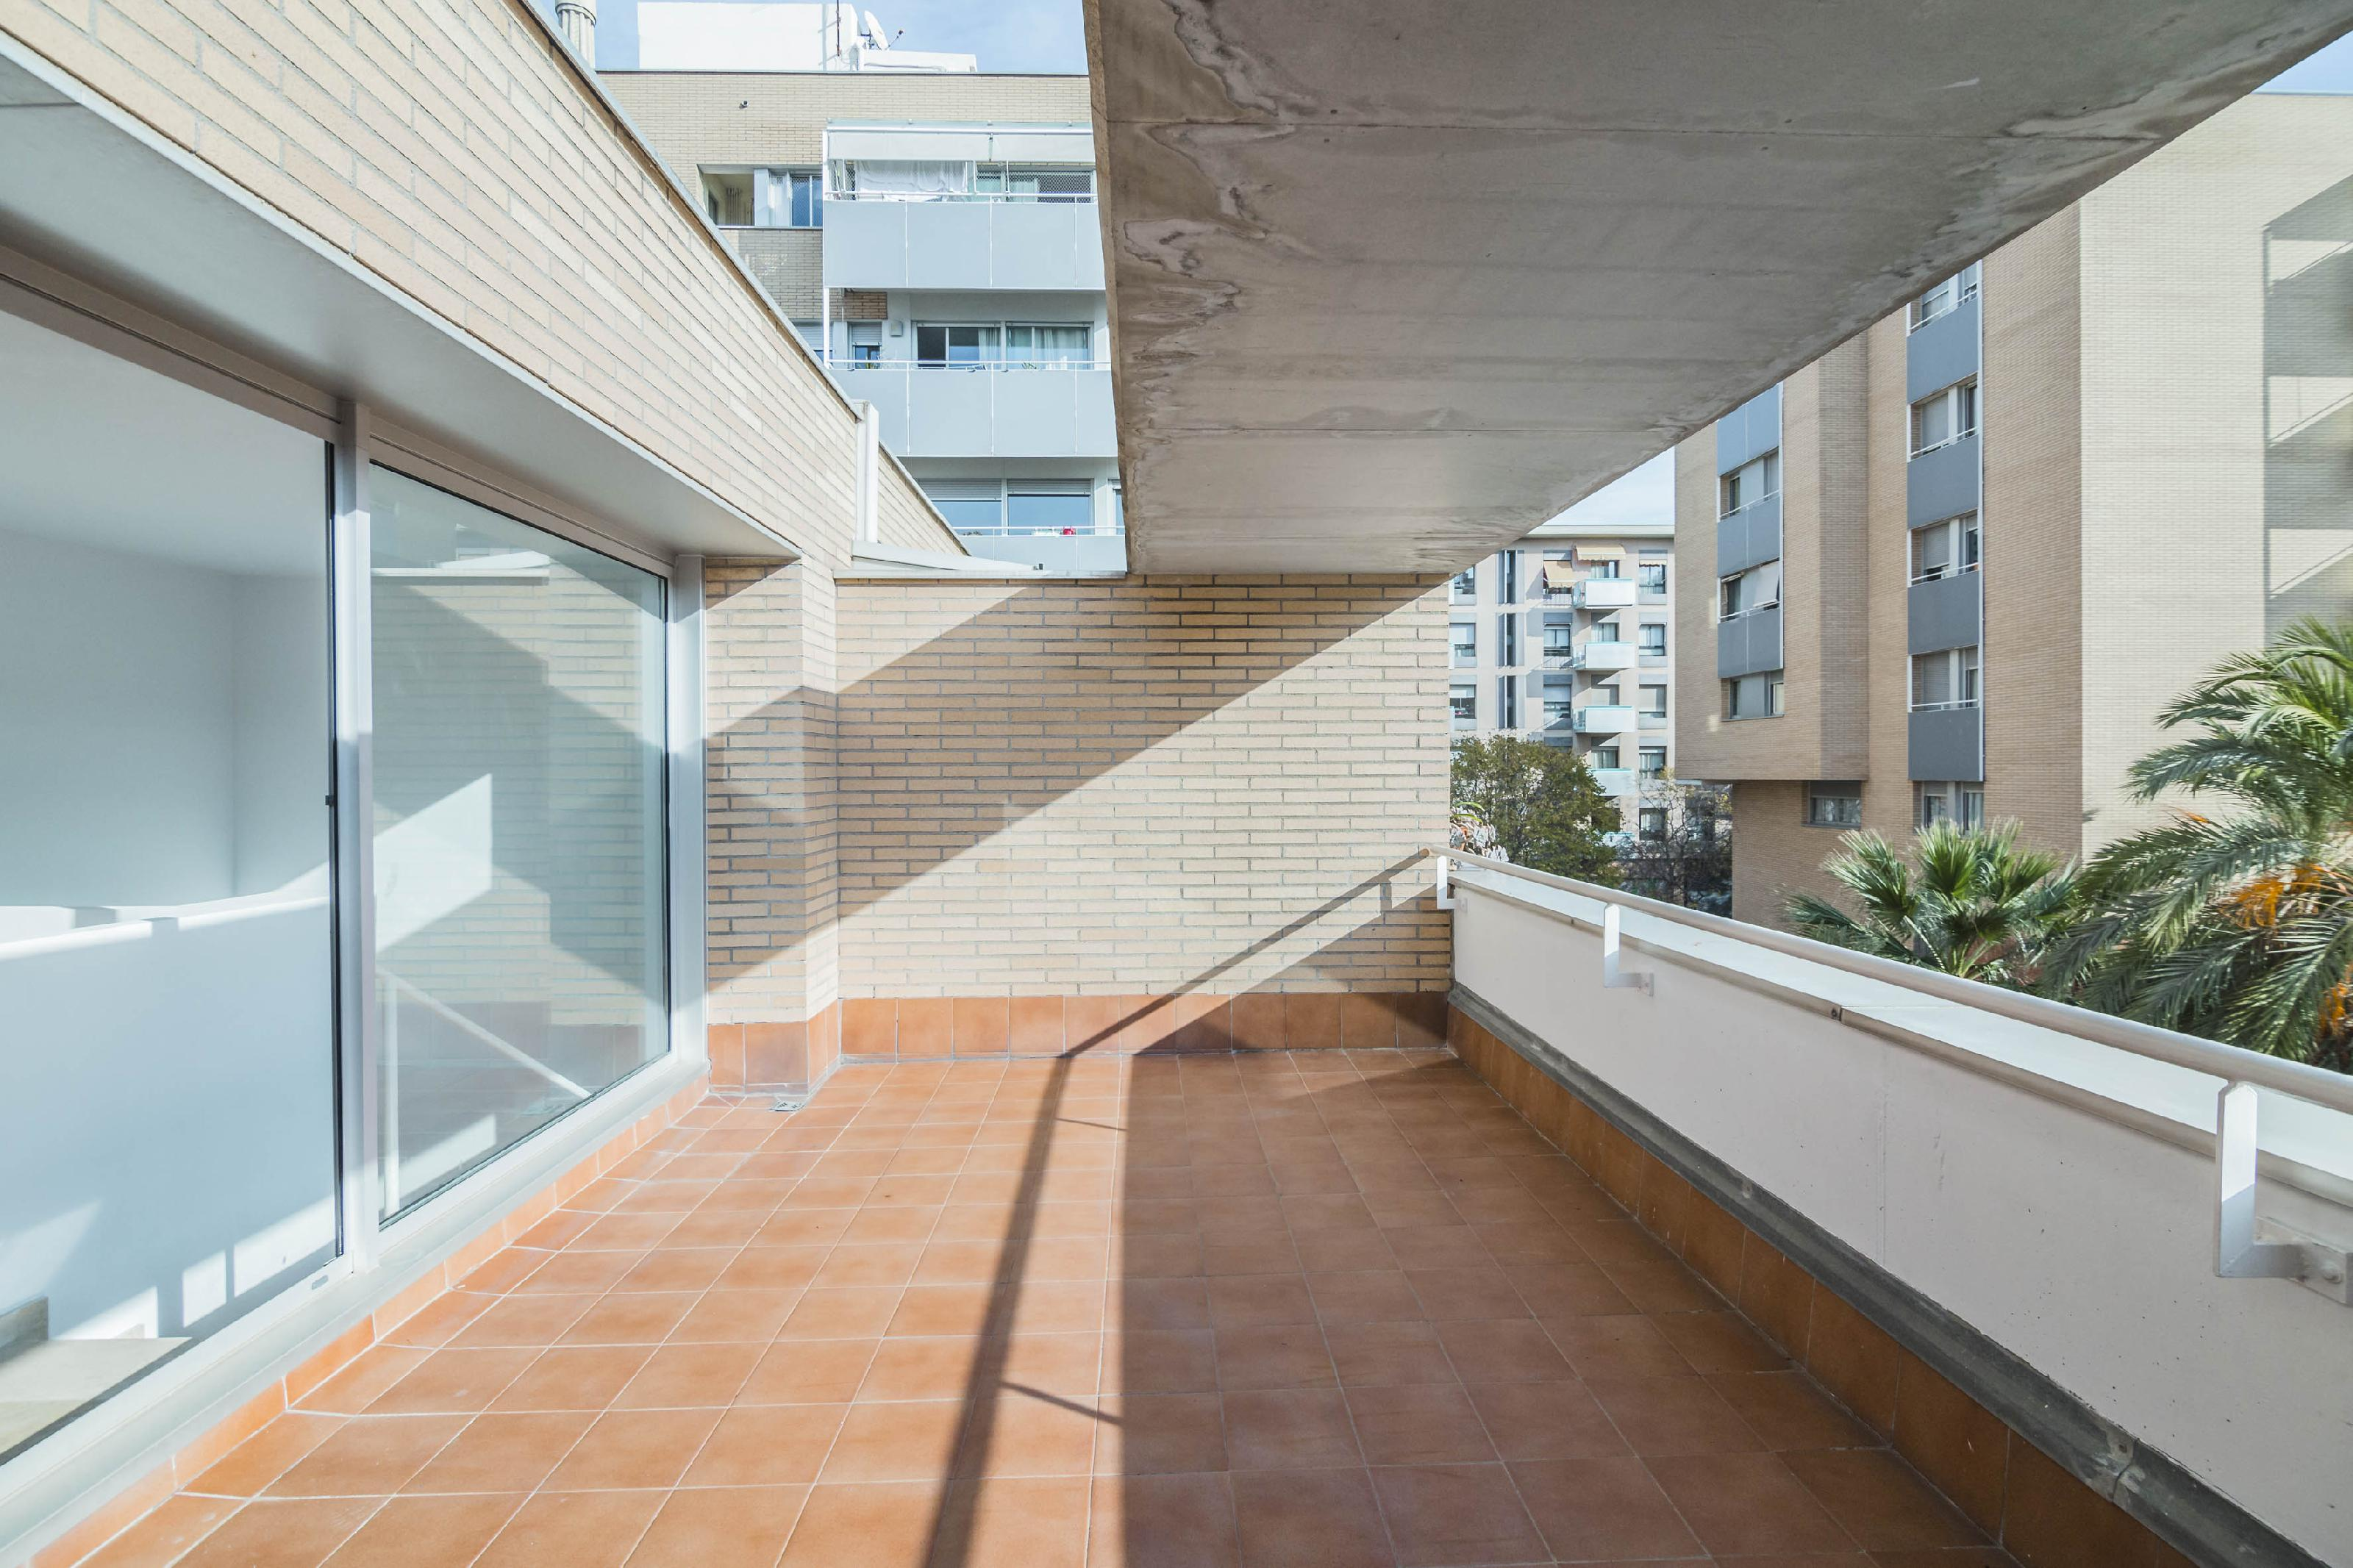 234378 Duplex for sale in Sant Martí, Diagonal Mar and Front Marítim PN 24